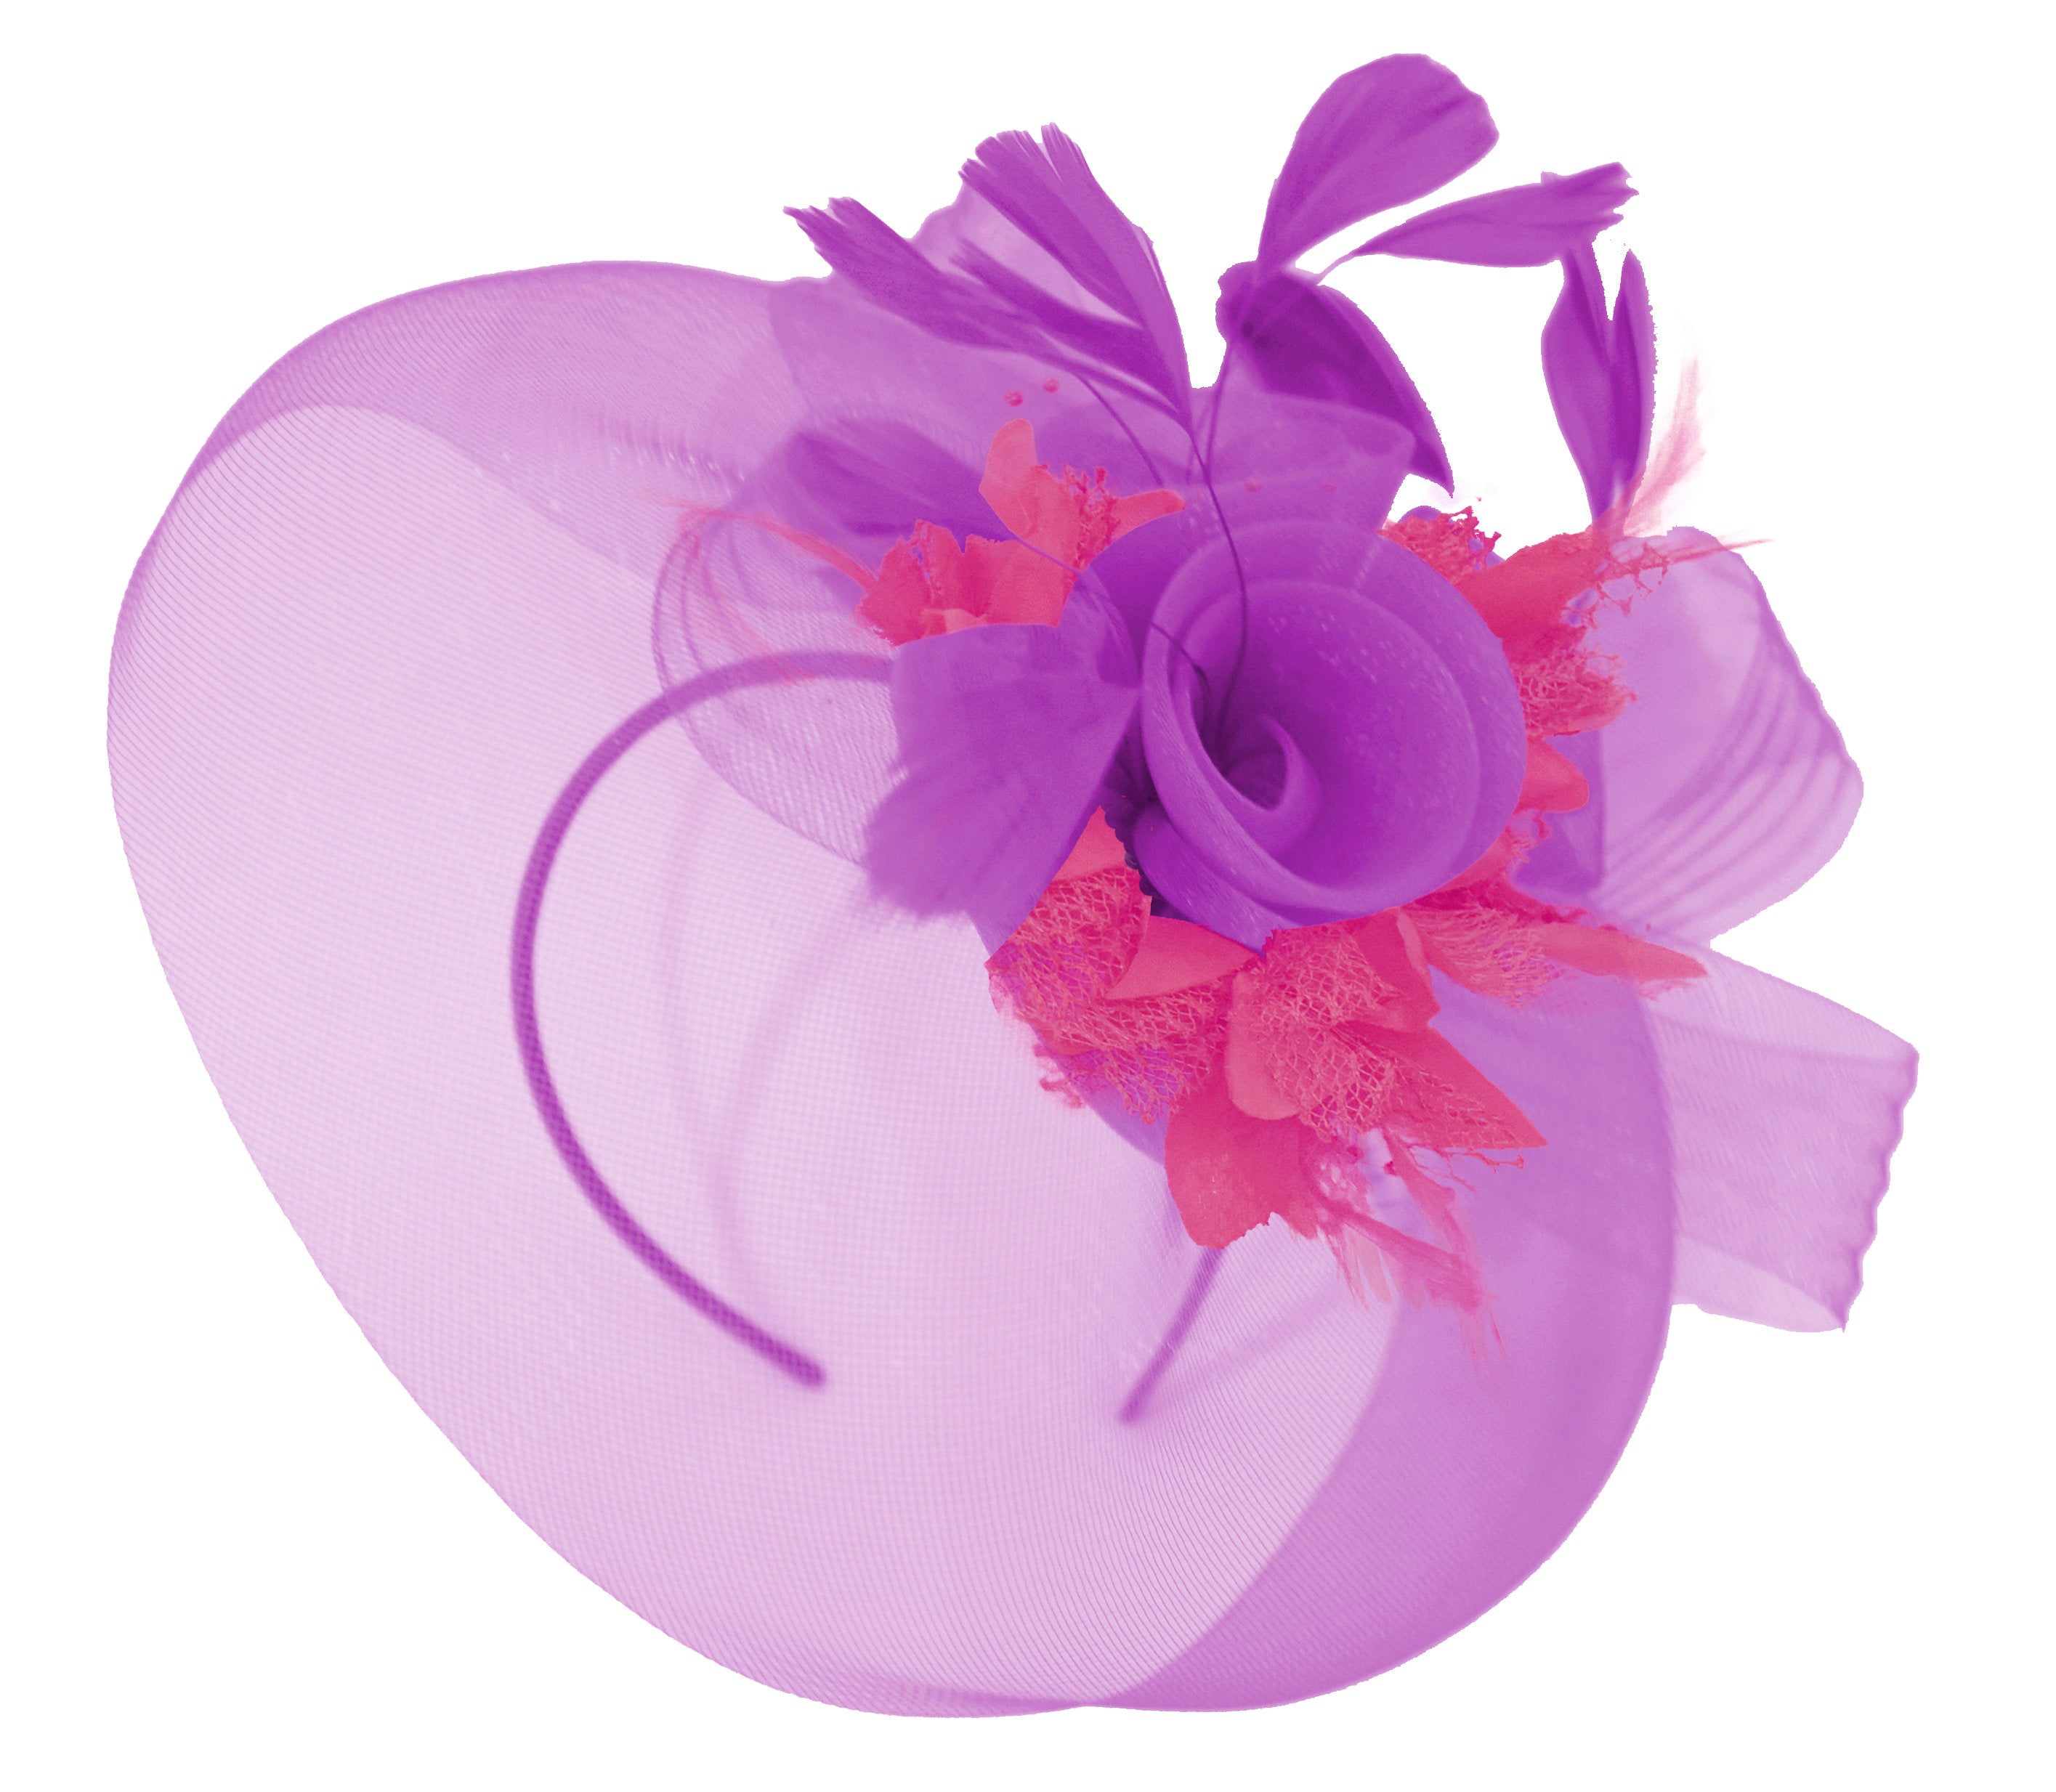 Caprilite Purple and Fuchsia Fascinator on Headband Veil UK Wedding Ascot Races Hatinator